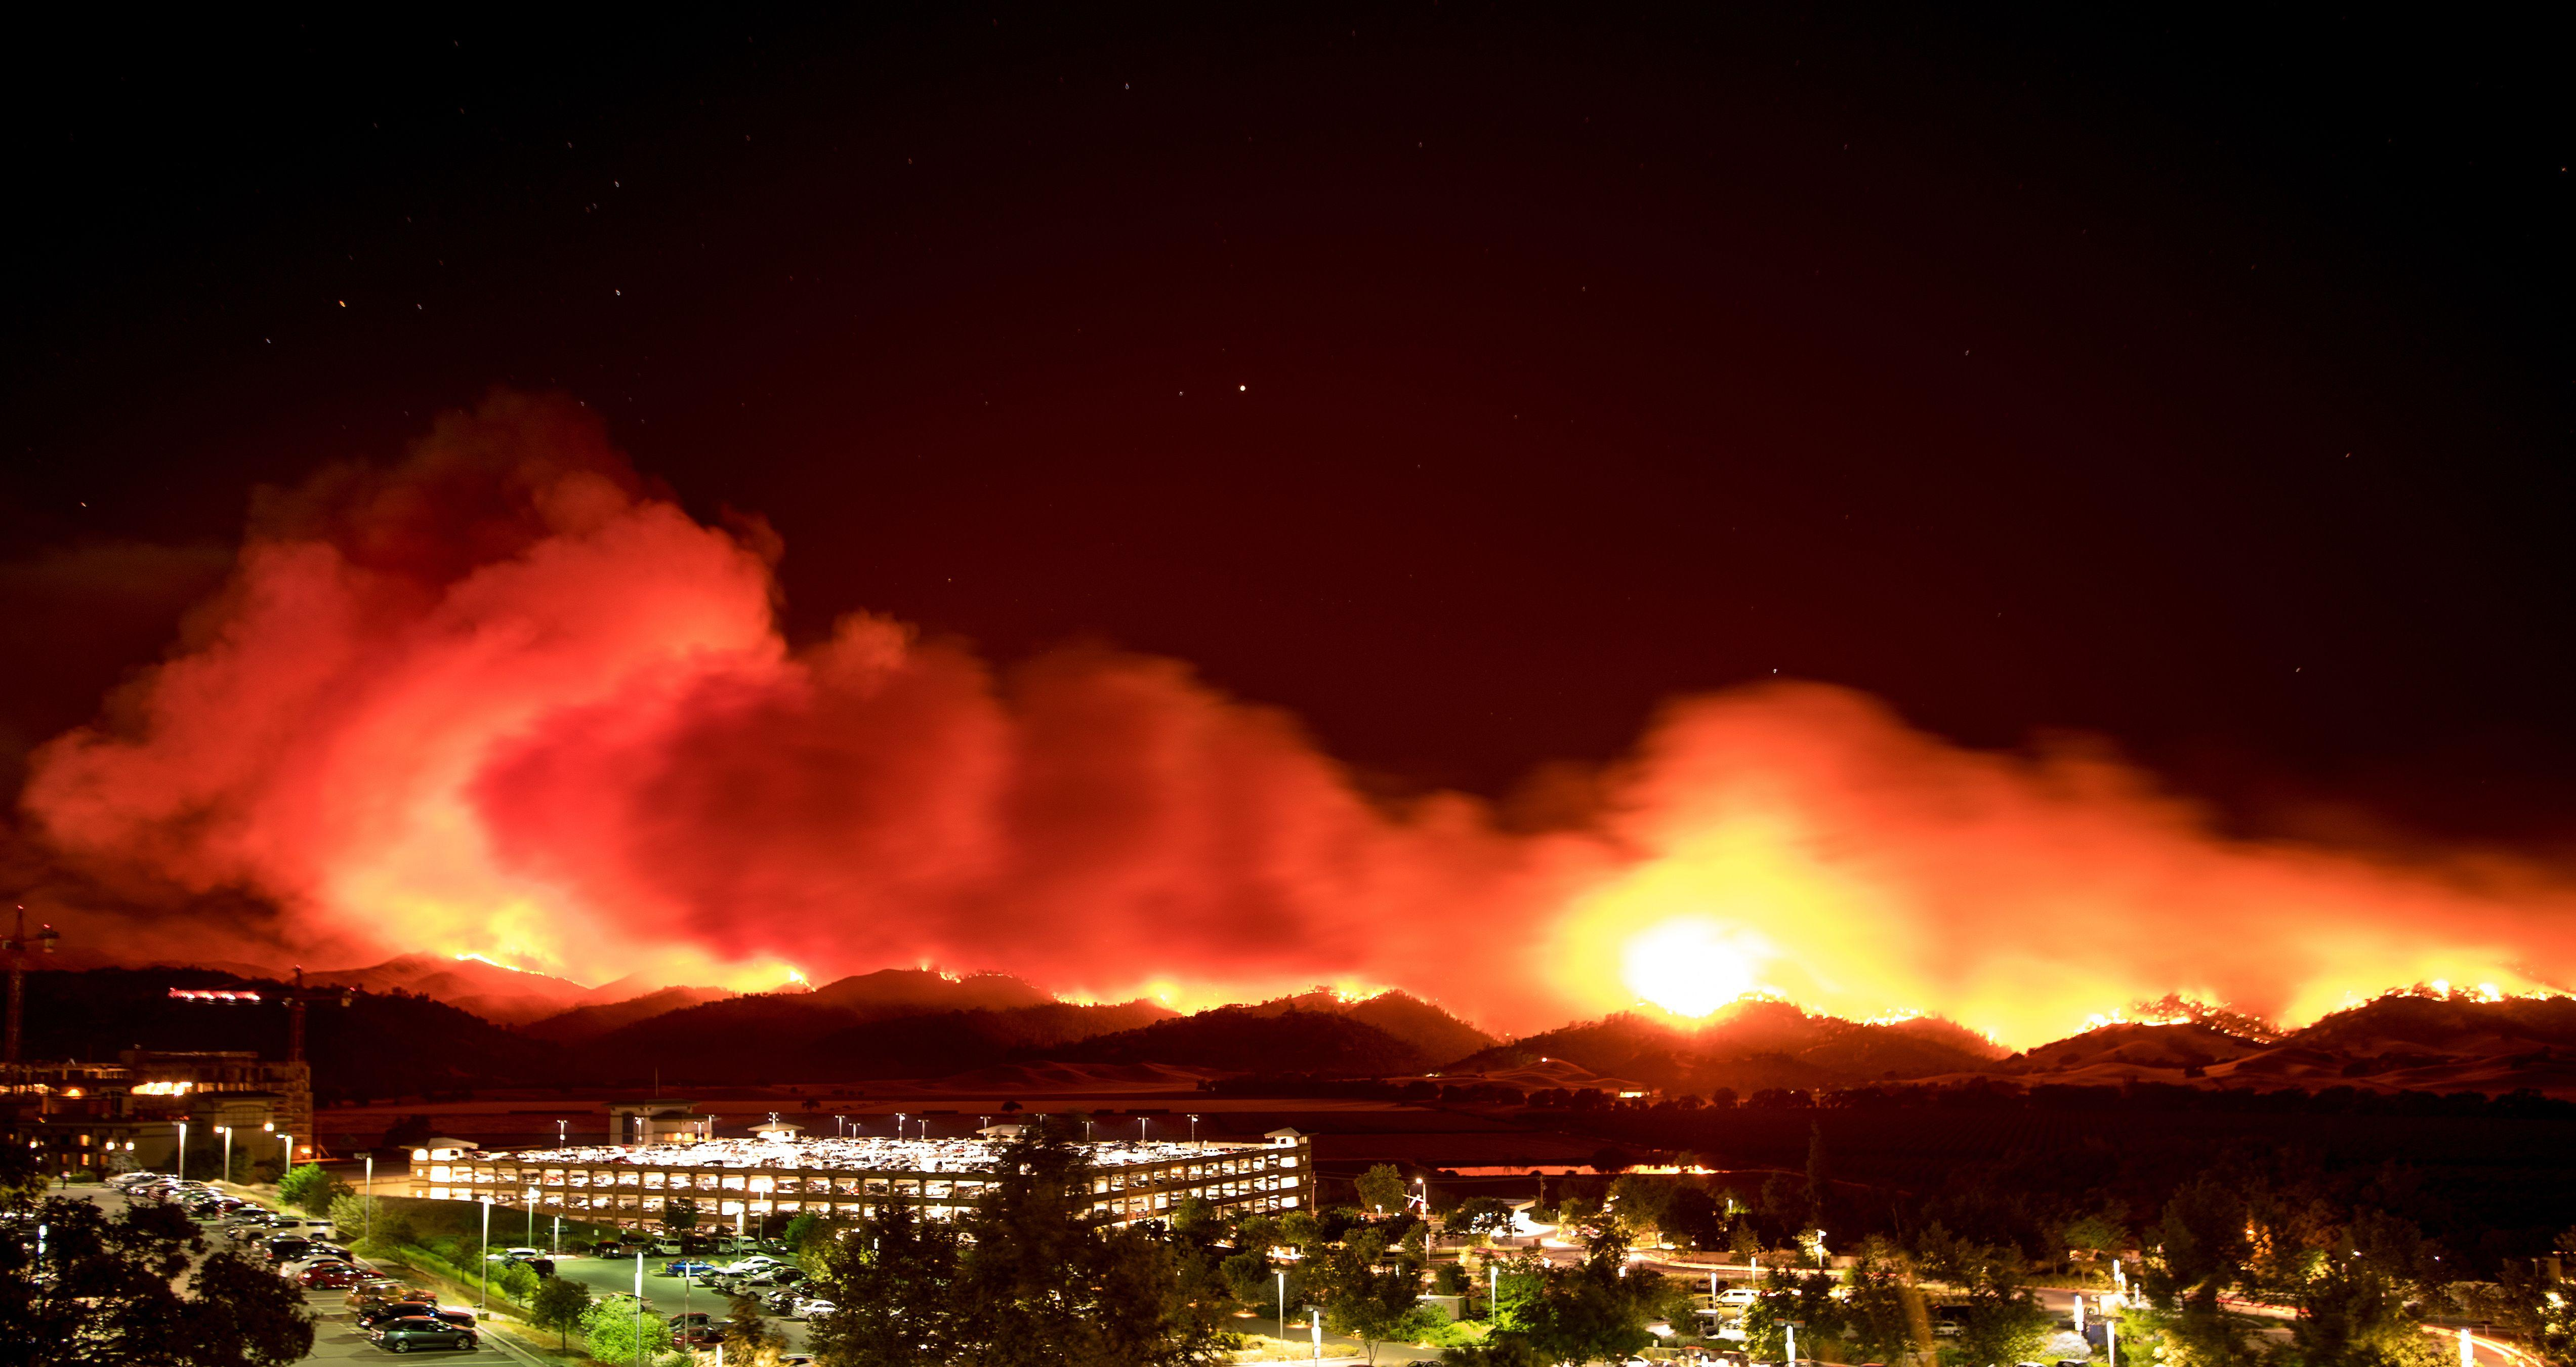 <p>In this long exposure photo, fire burns behind Cache Creek Casino Resort near Guinda, Calif. near on July 1, 2018. (Photo: Josh Edelson/AFP/Getty Images) </p>